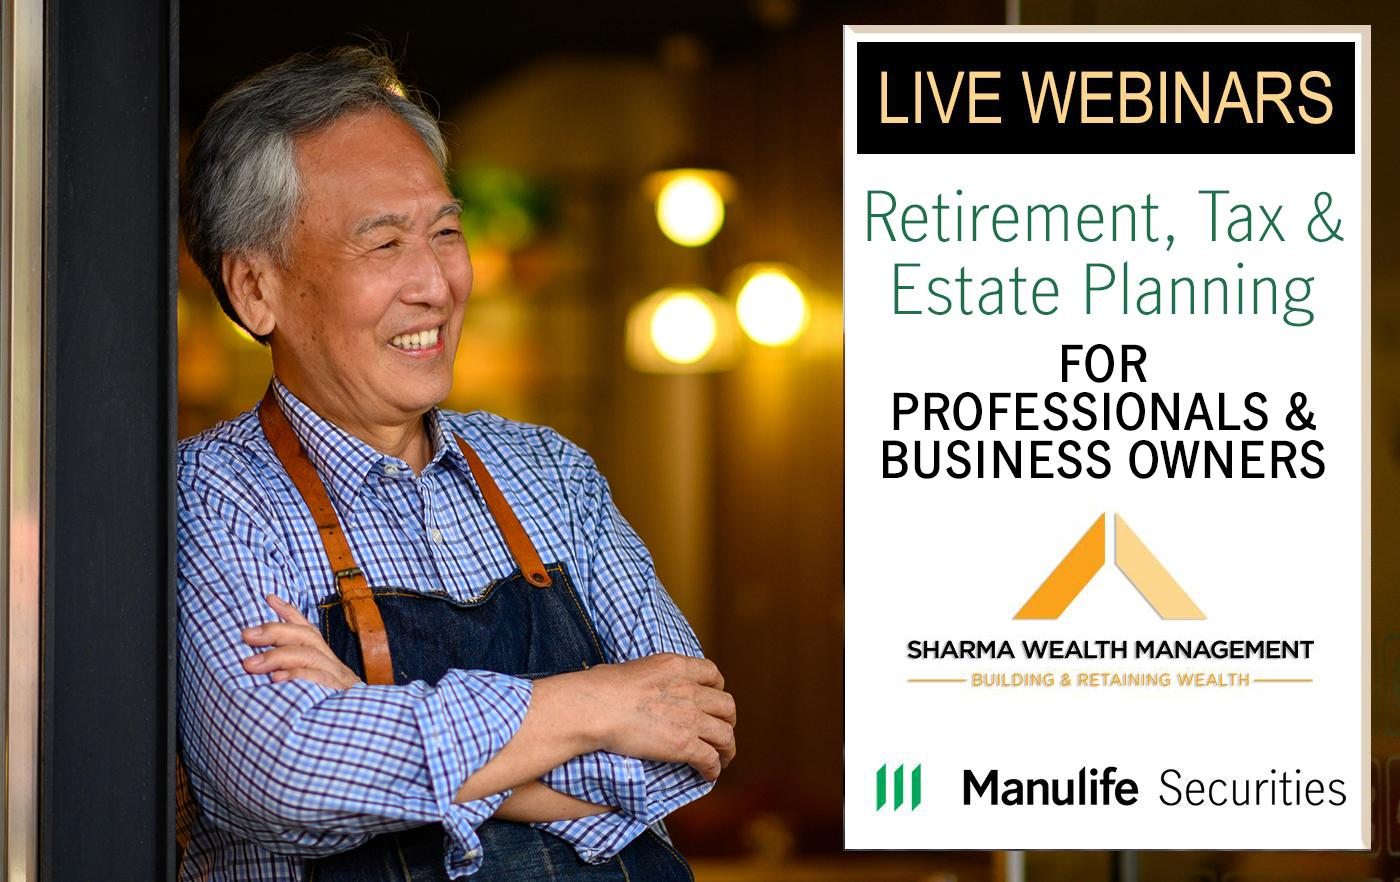 Retirement, Tax & Estate Planning for Professionals & Business Owners Thumbnail